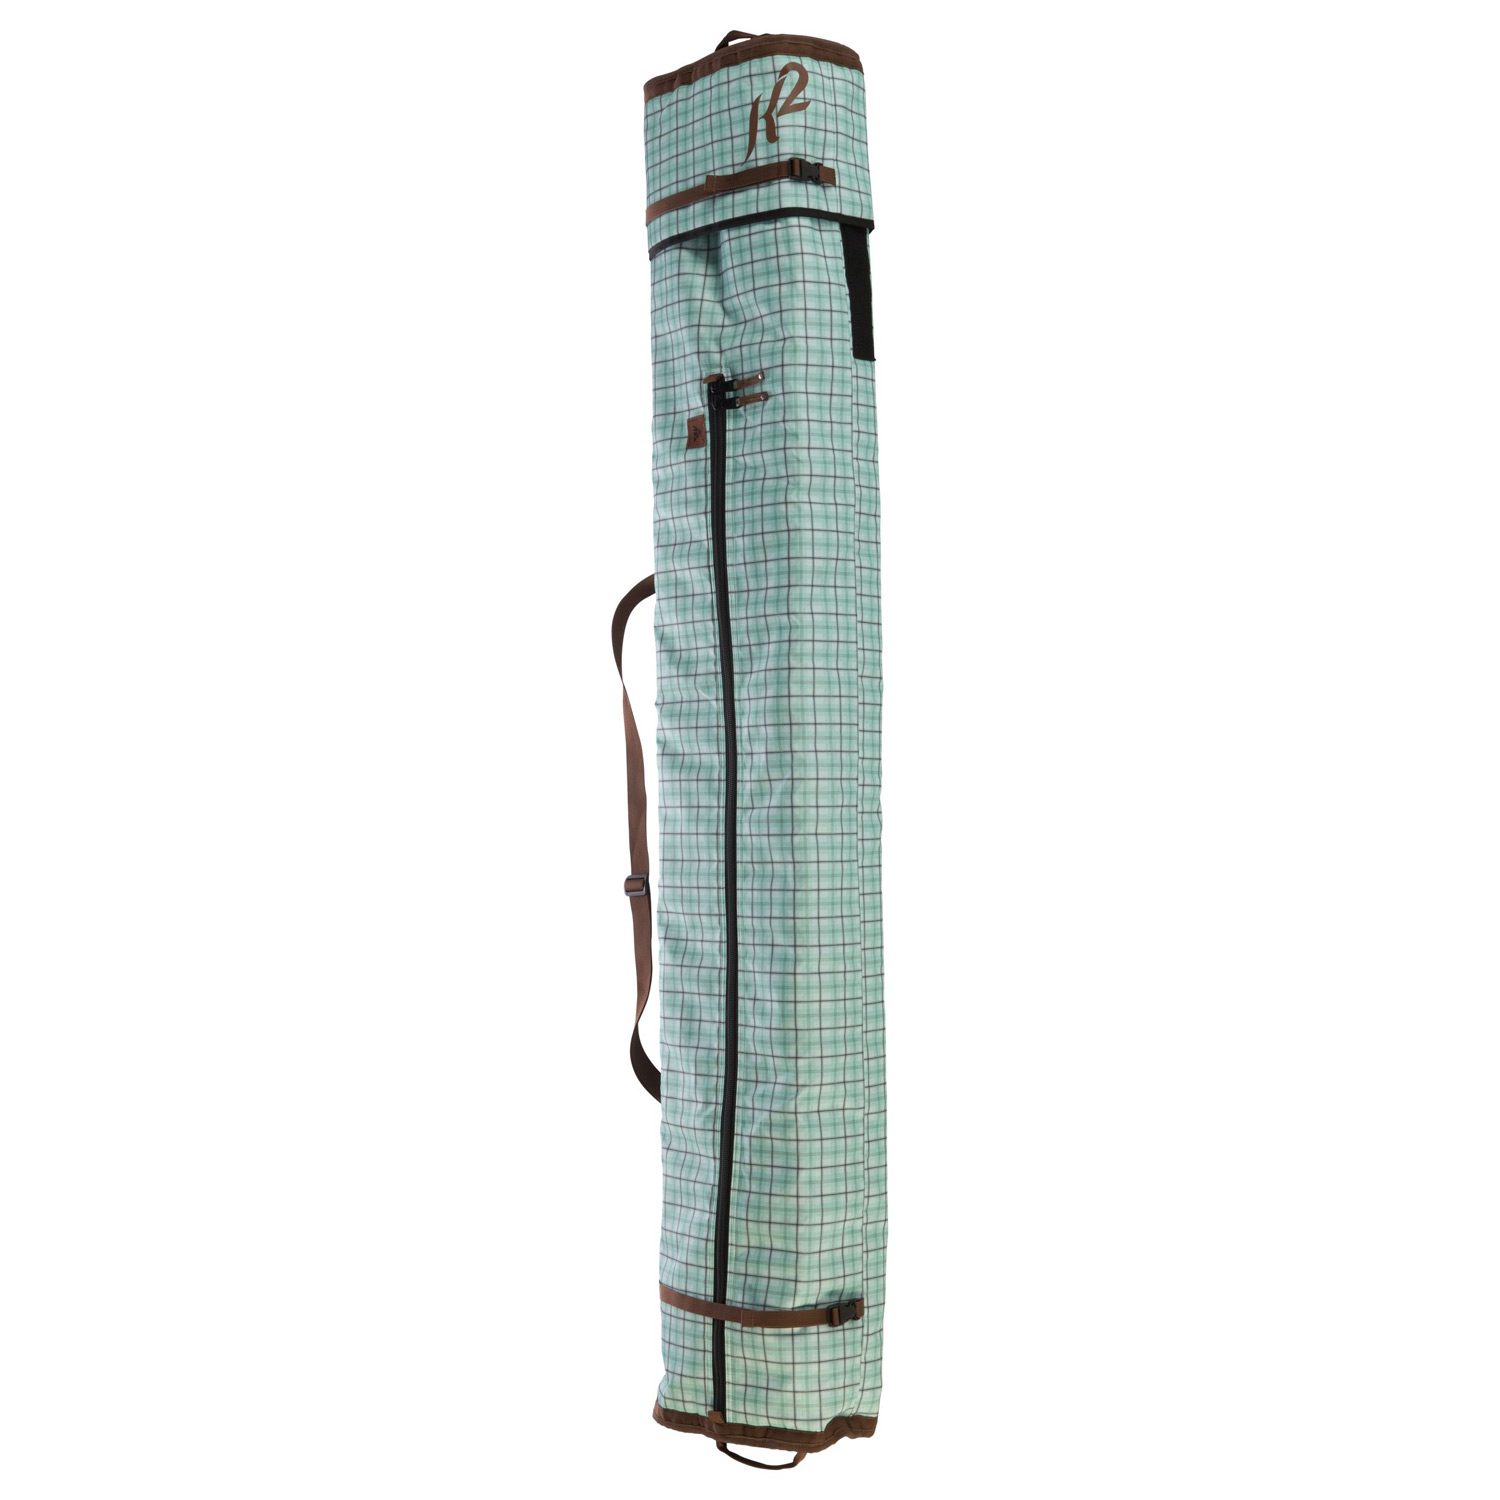 Ski For many the Deluxe Single is the perfect size  to travel light and effeciently in the air or by  land. An integrated shoulder strap makes it  easy to move your skis, poles and layers from  place to place. - $41.95